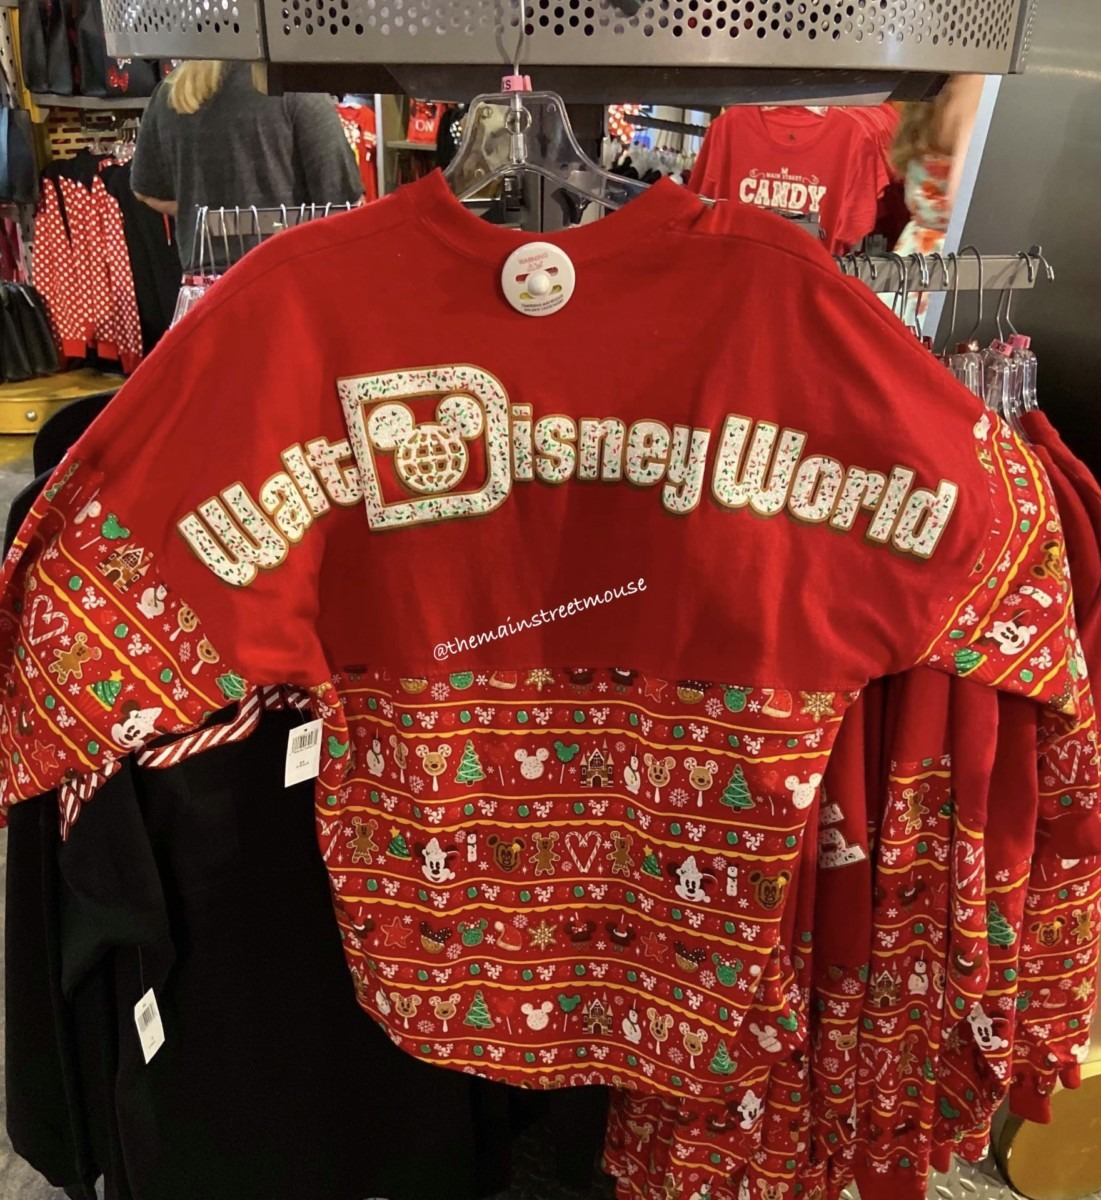 More New Holiday Spirit Jerseys and More now at WDW! #DisneyHolidays 1